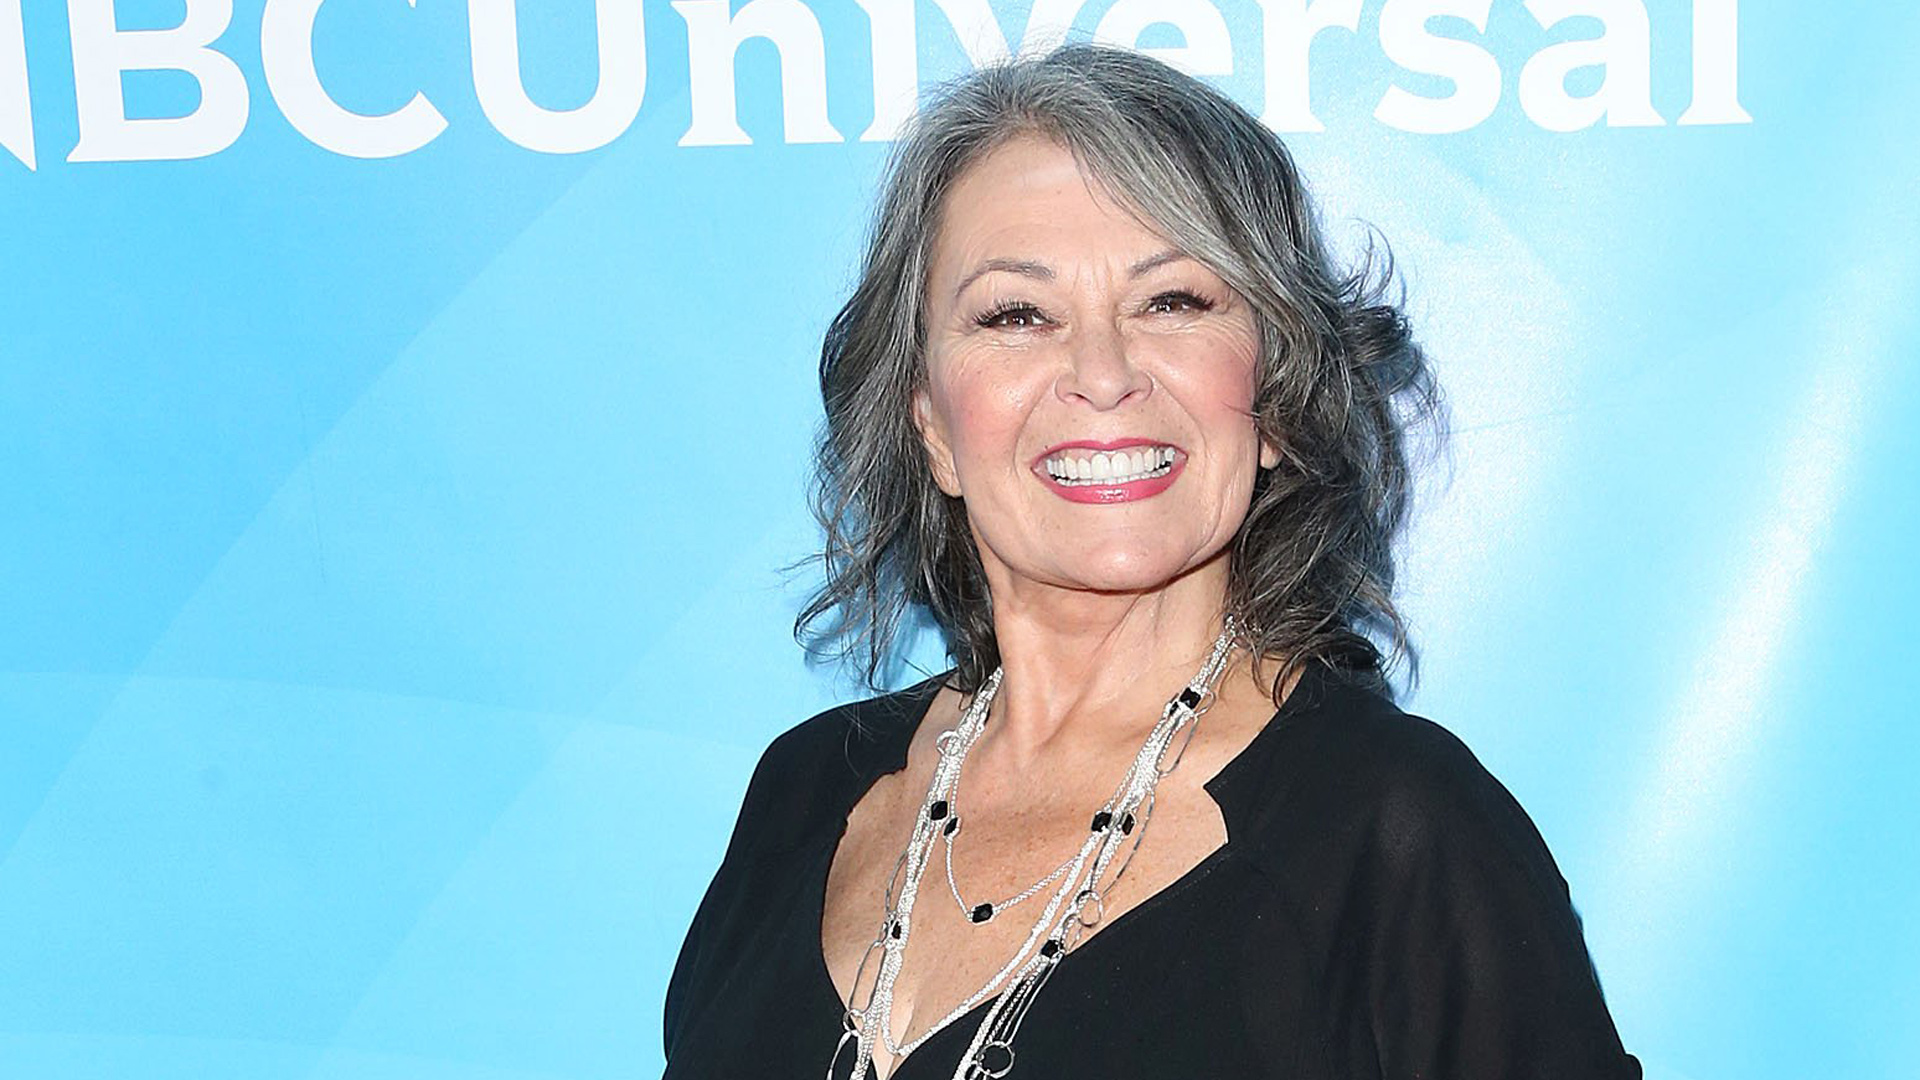 Roseanne Barr is back and worse than ever